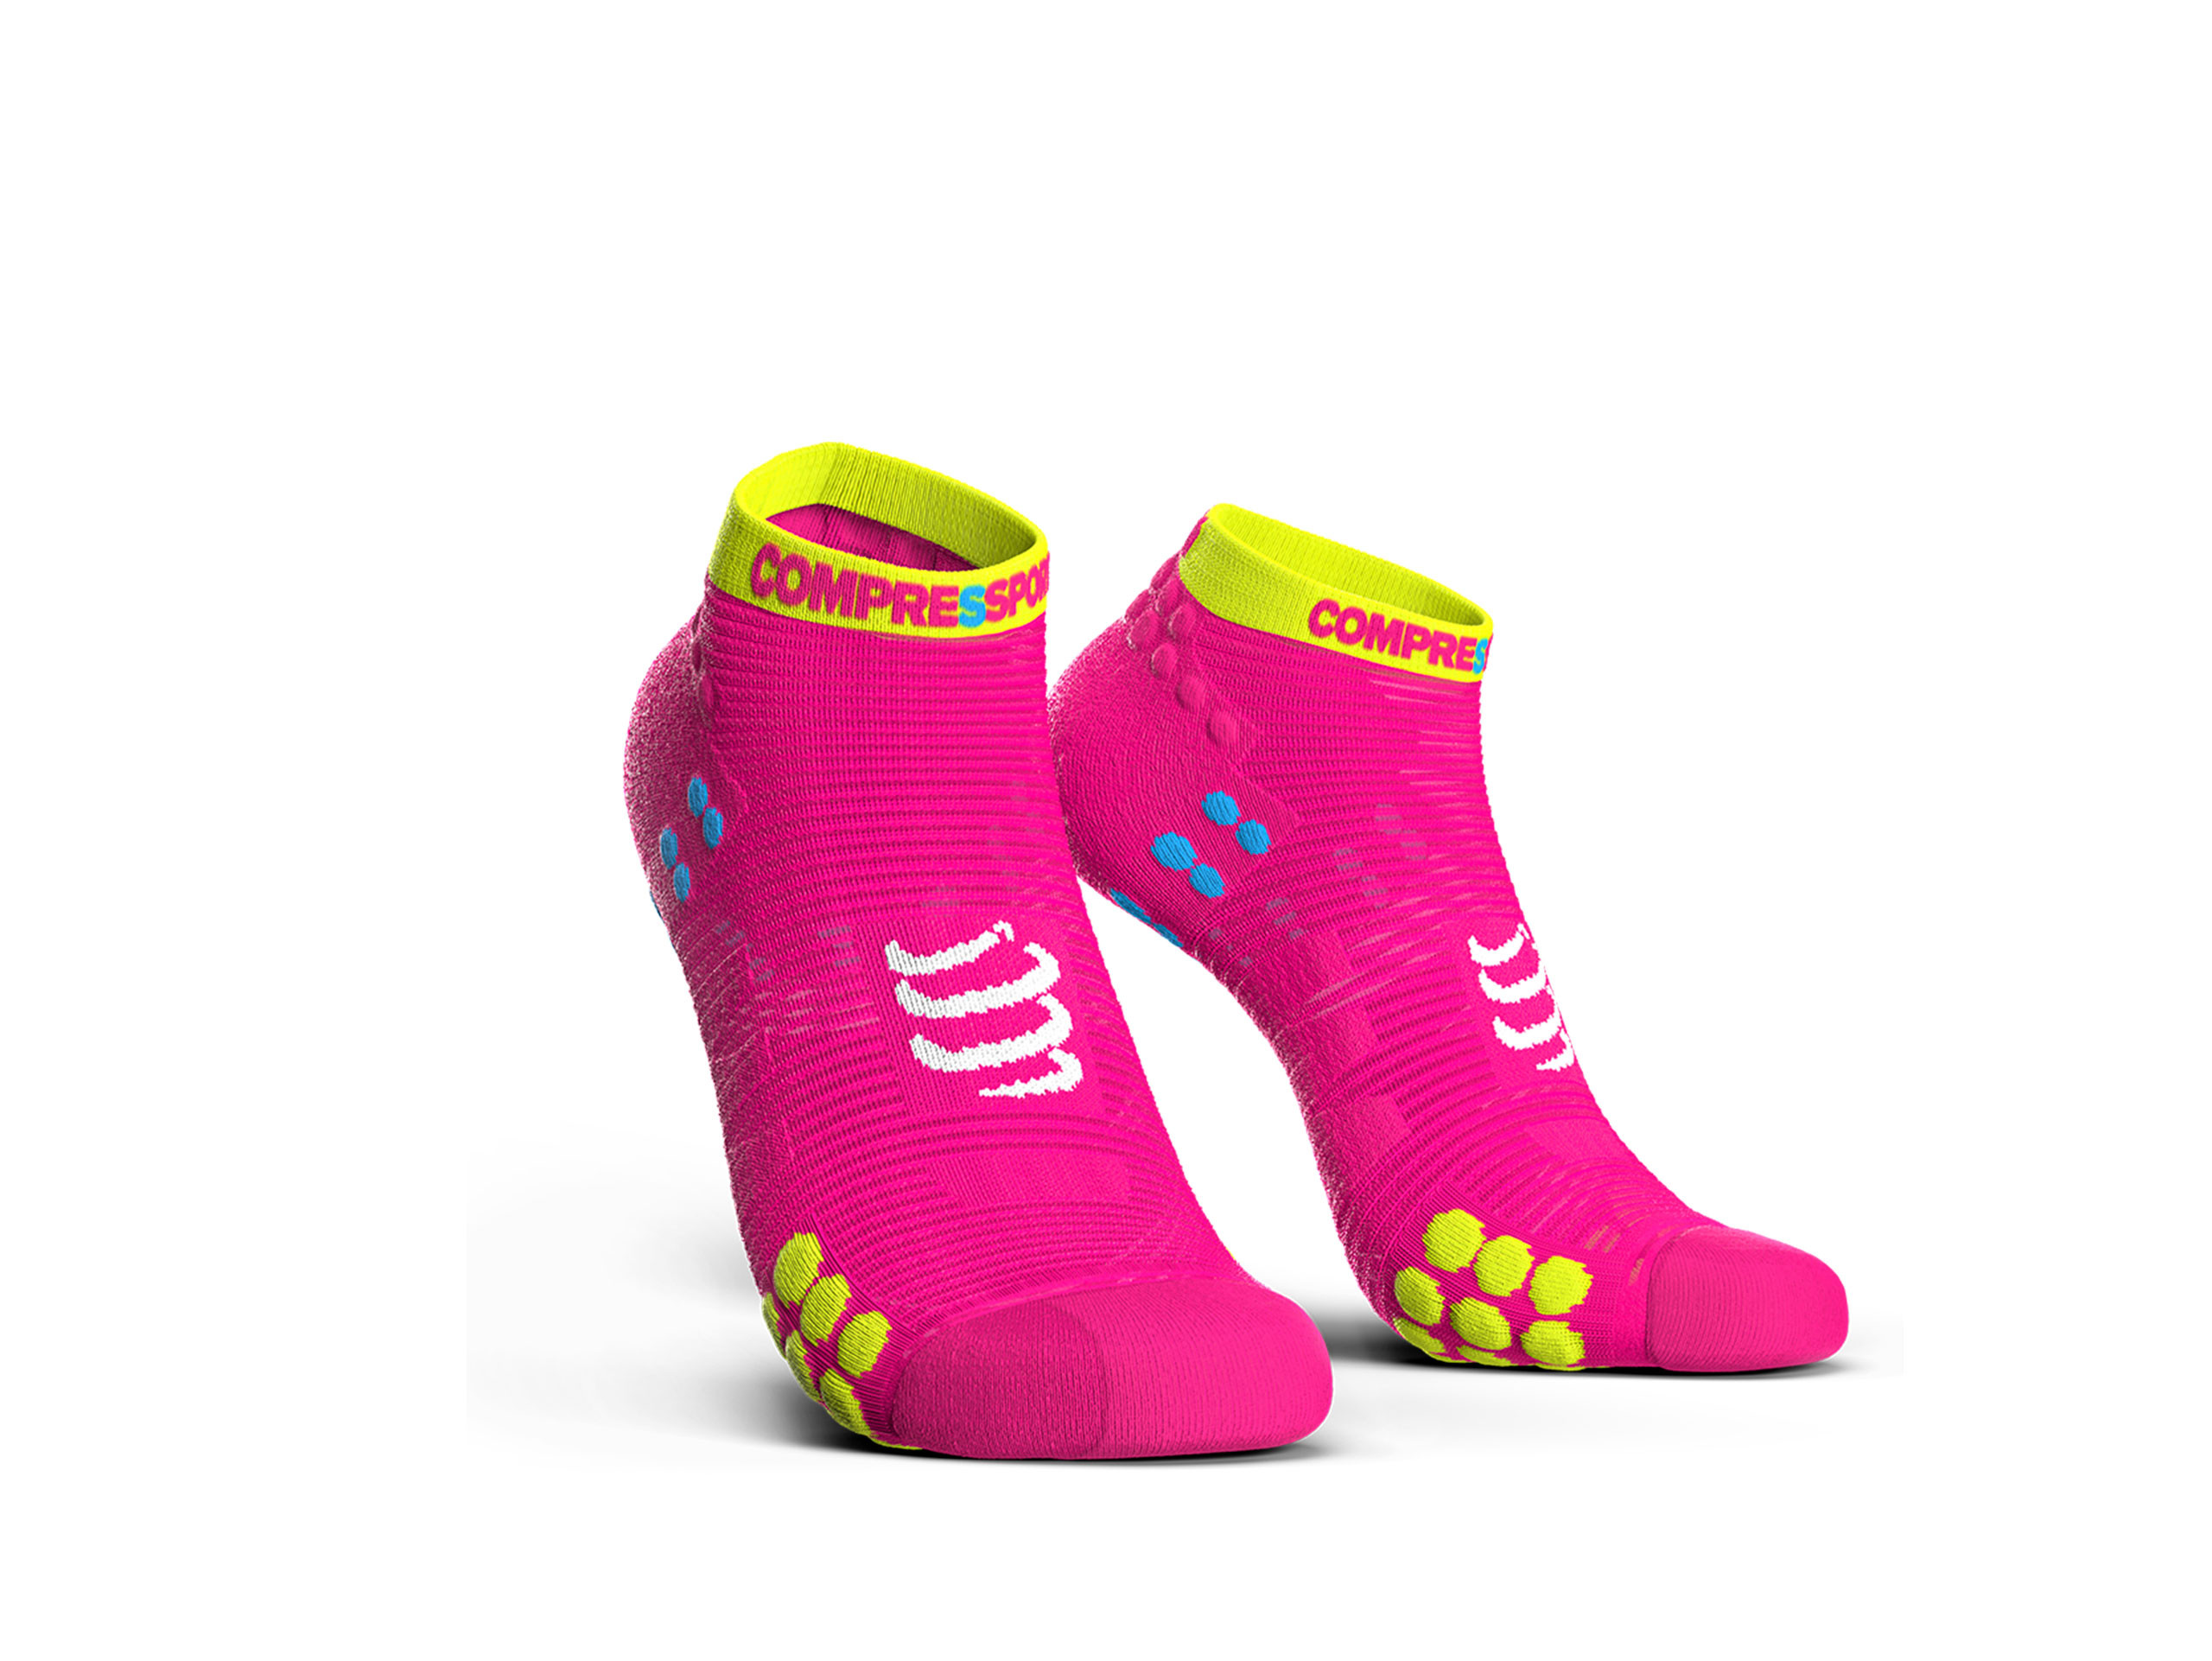 Pro Racing Socks v3.0 Run Low neongelb